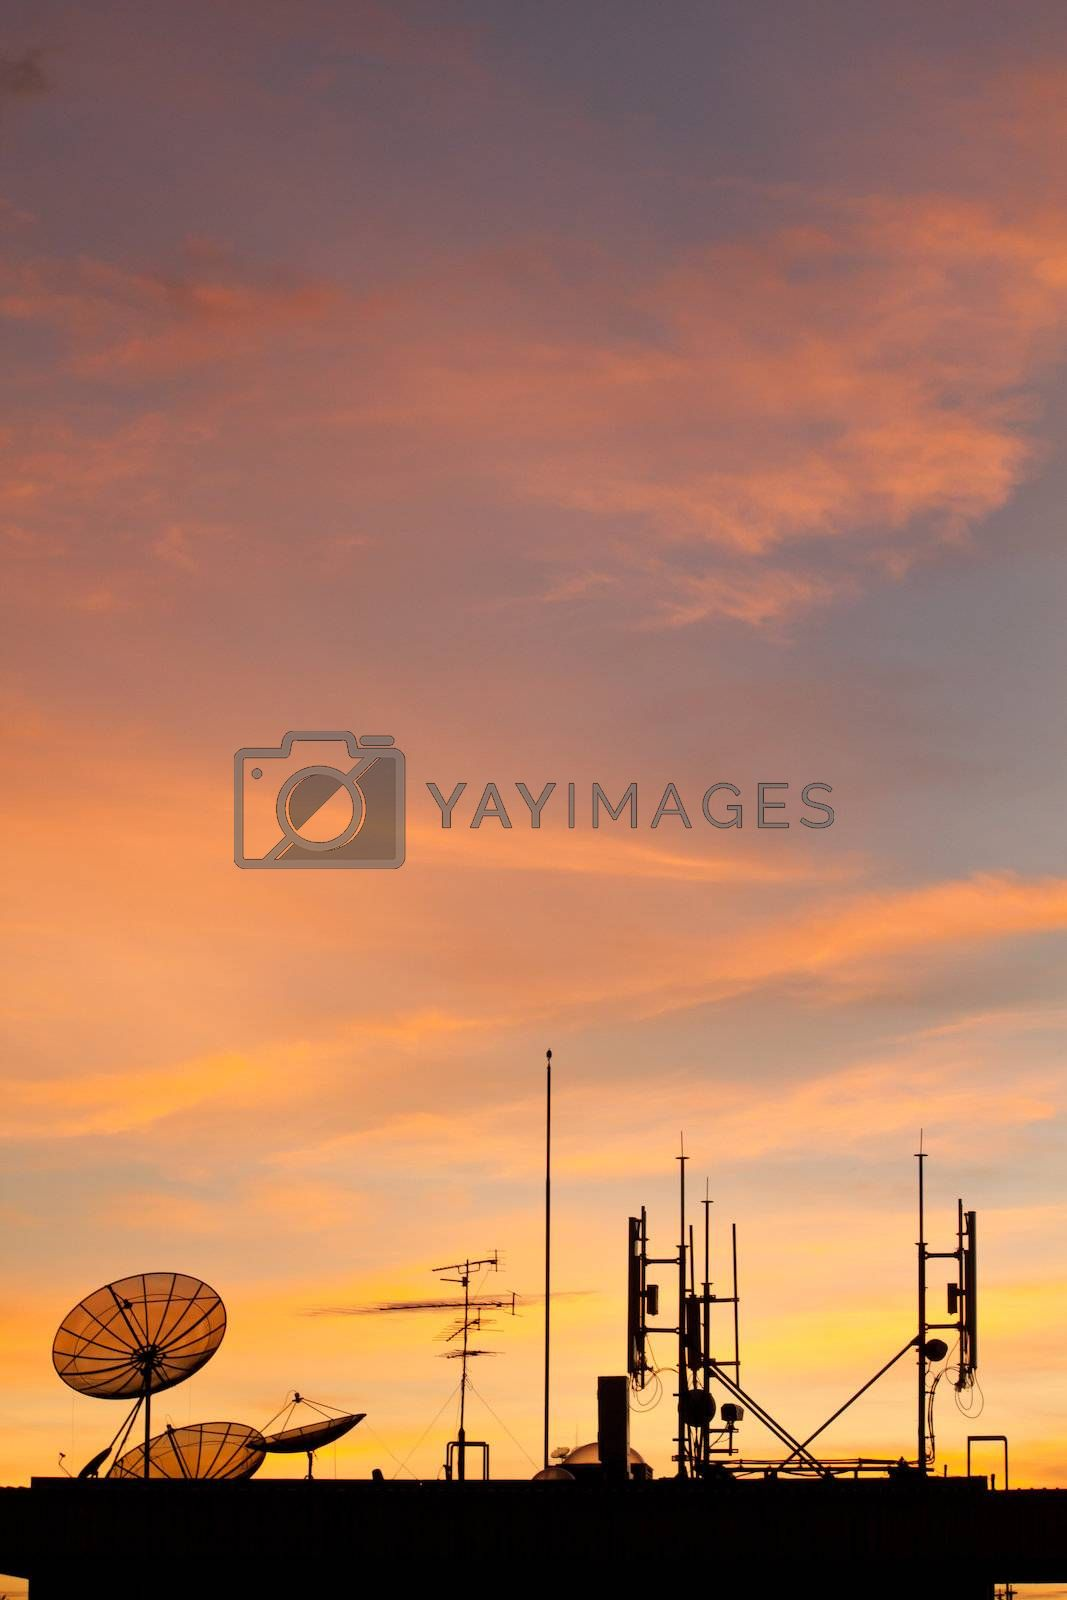 Worldwide Communication,  Satellite and other antenna network against beautiful sky at sunset